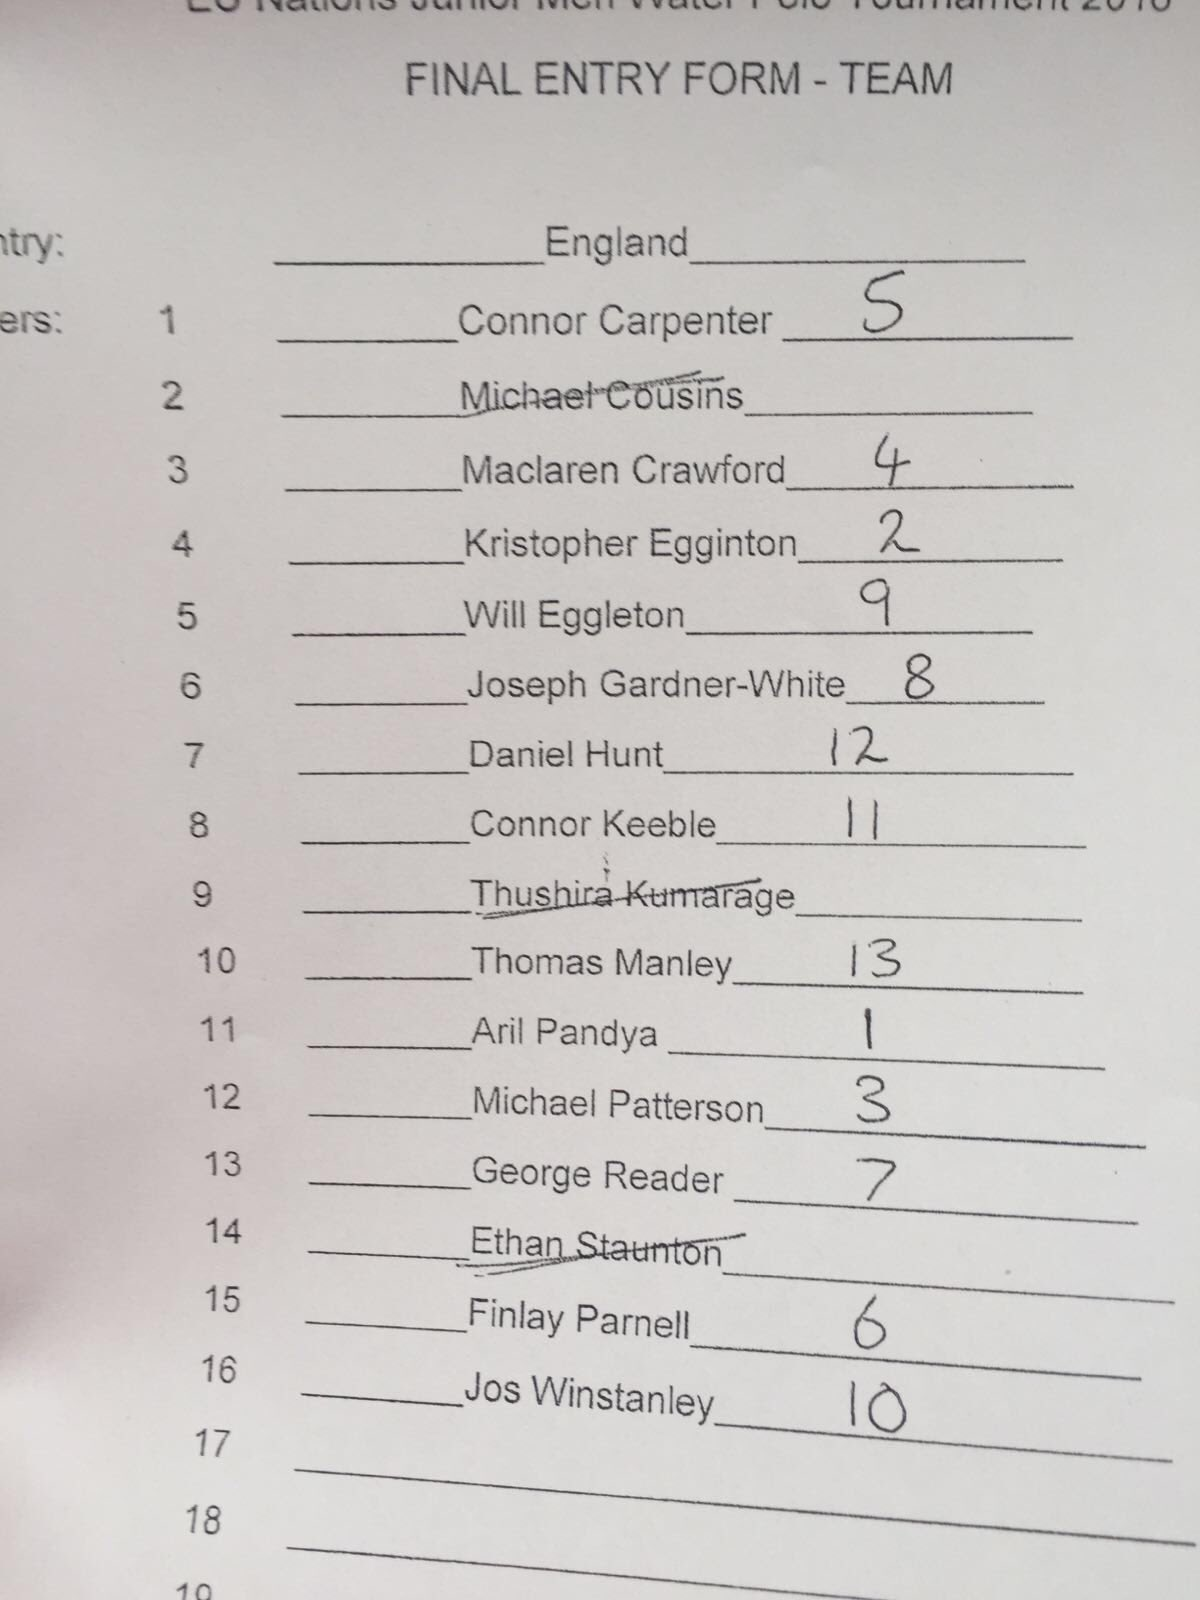 Your ENG team this morning, but with a last minute change - K Egginton out & E Staunton in. End of 1/4 AUT 2 ENG 0 https://t.co/uQOWcP1aro